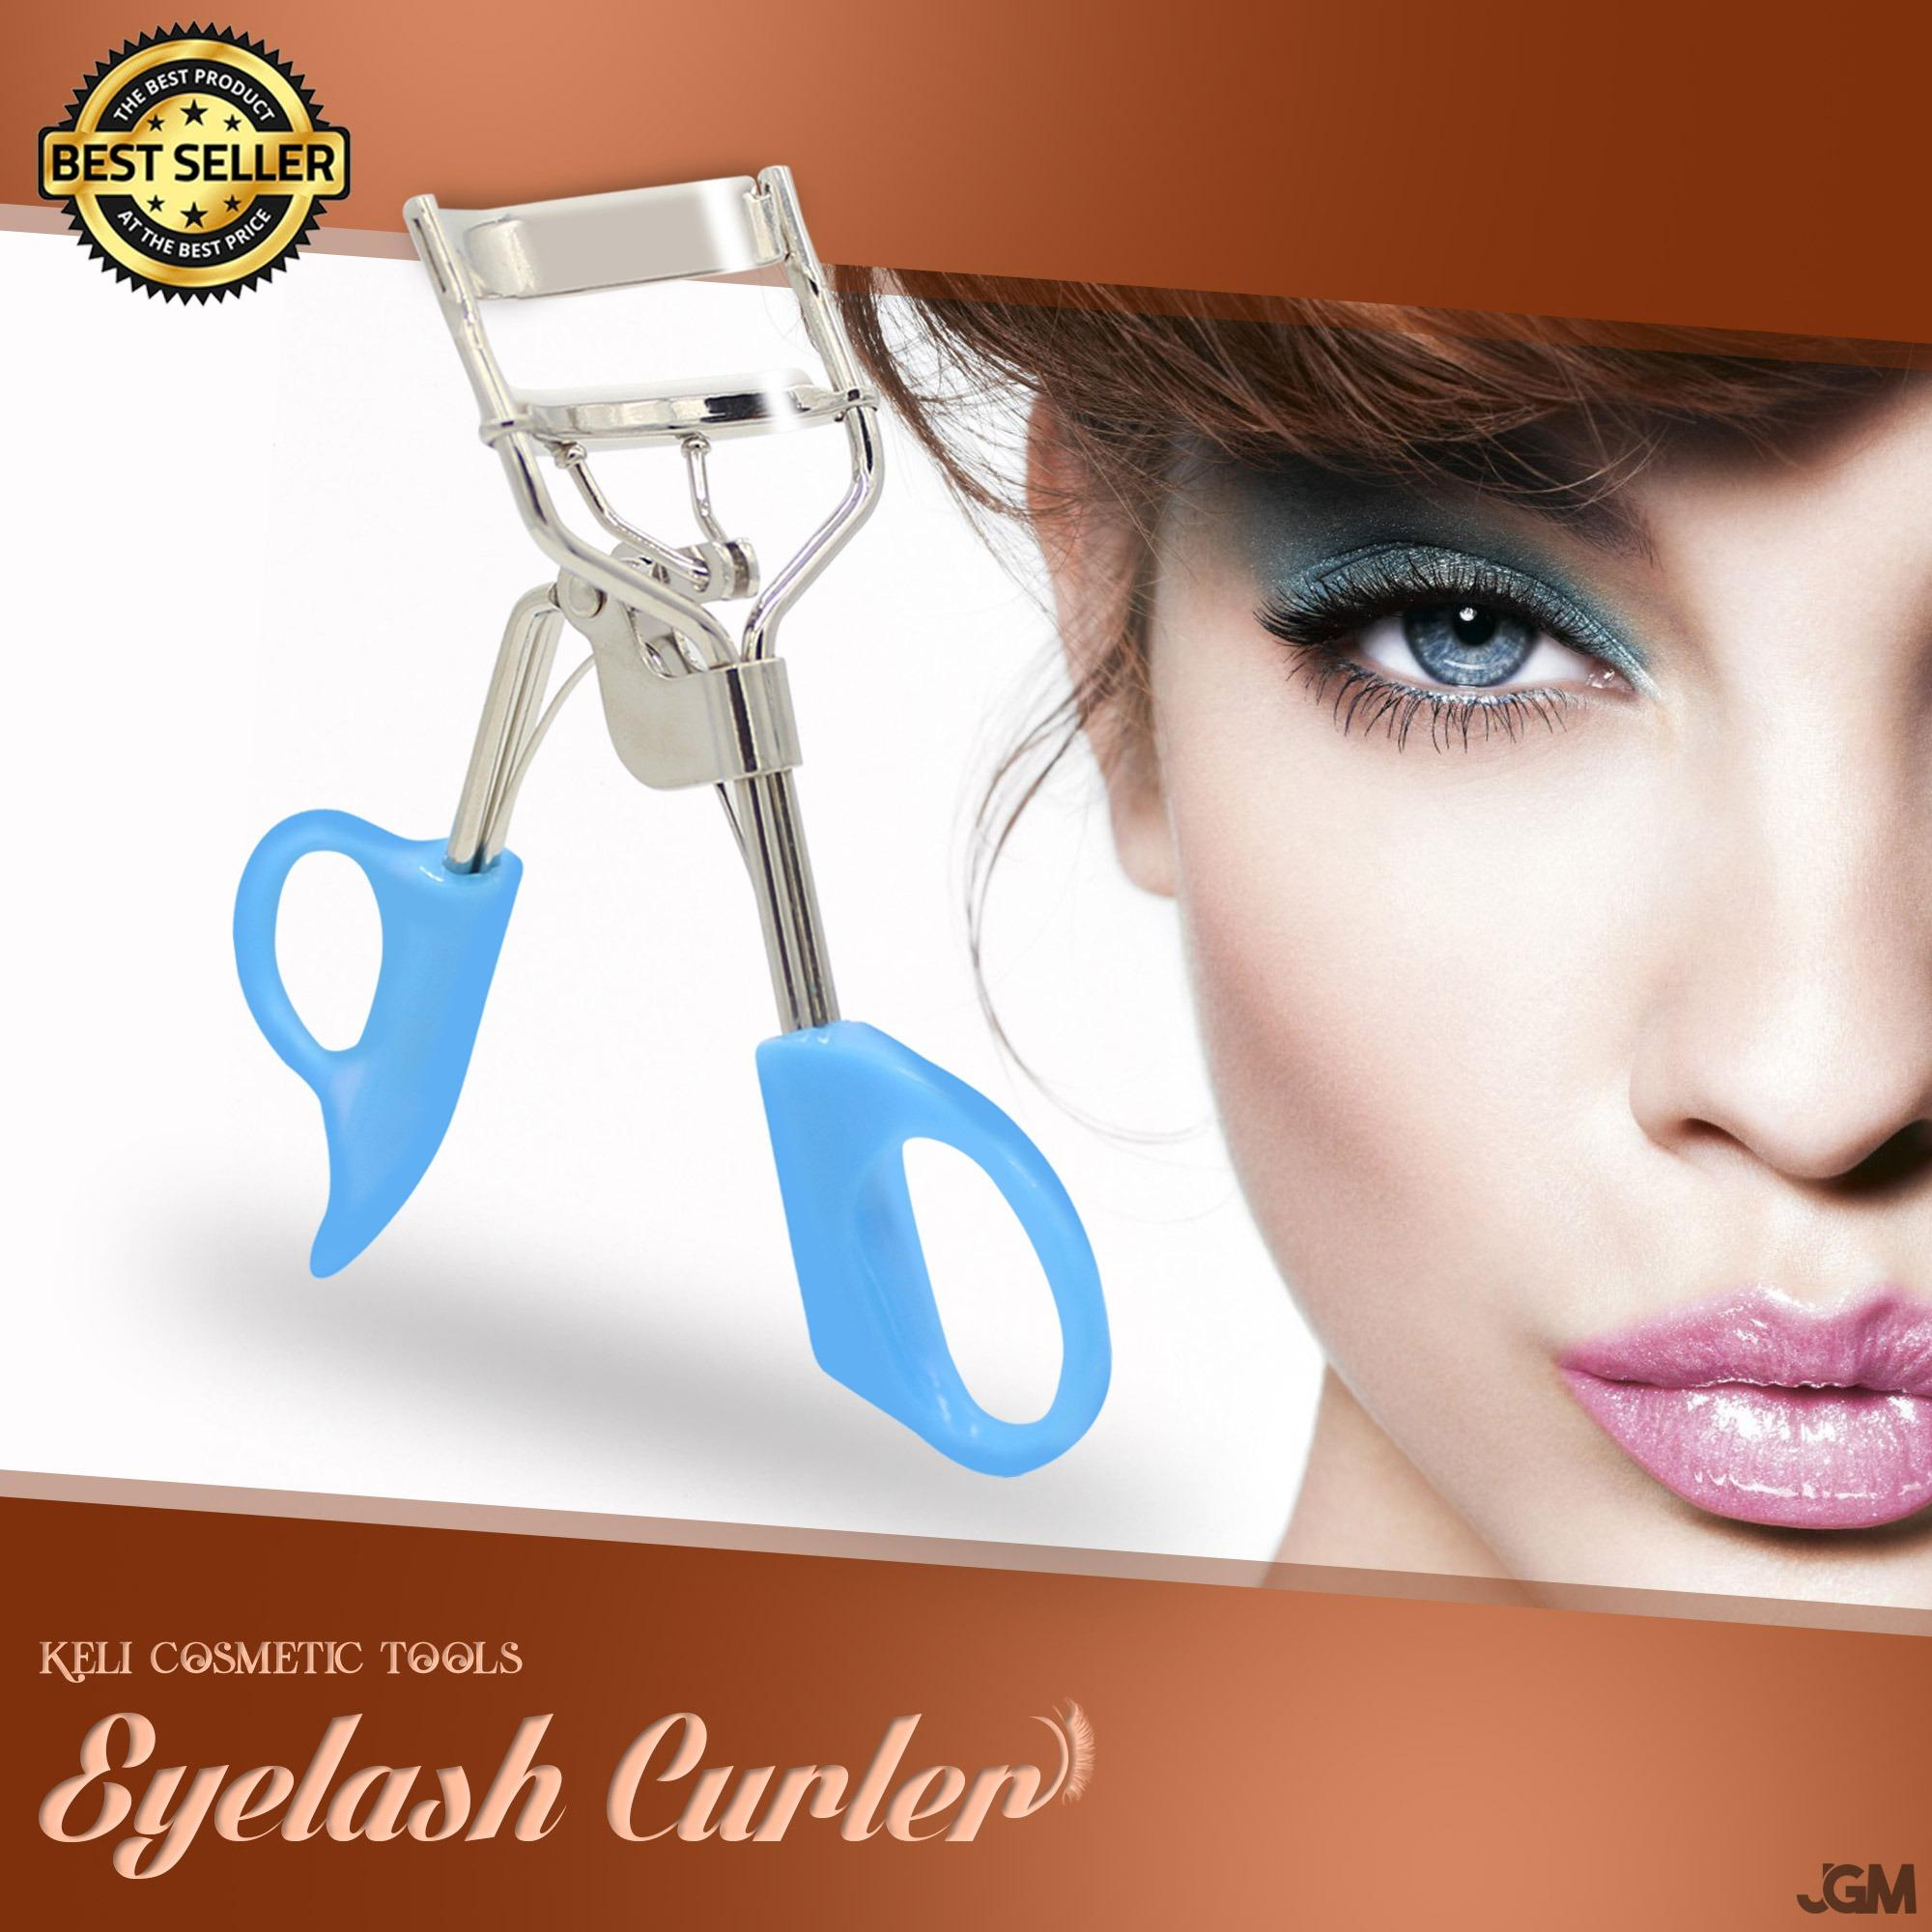 Keli Premium Long Lasting Eyelash Curler Easy To Use And Gives Your Eyelashes A Desired Curl Philippines